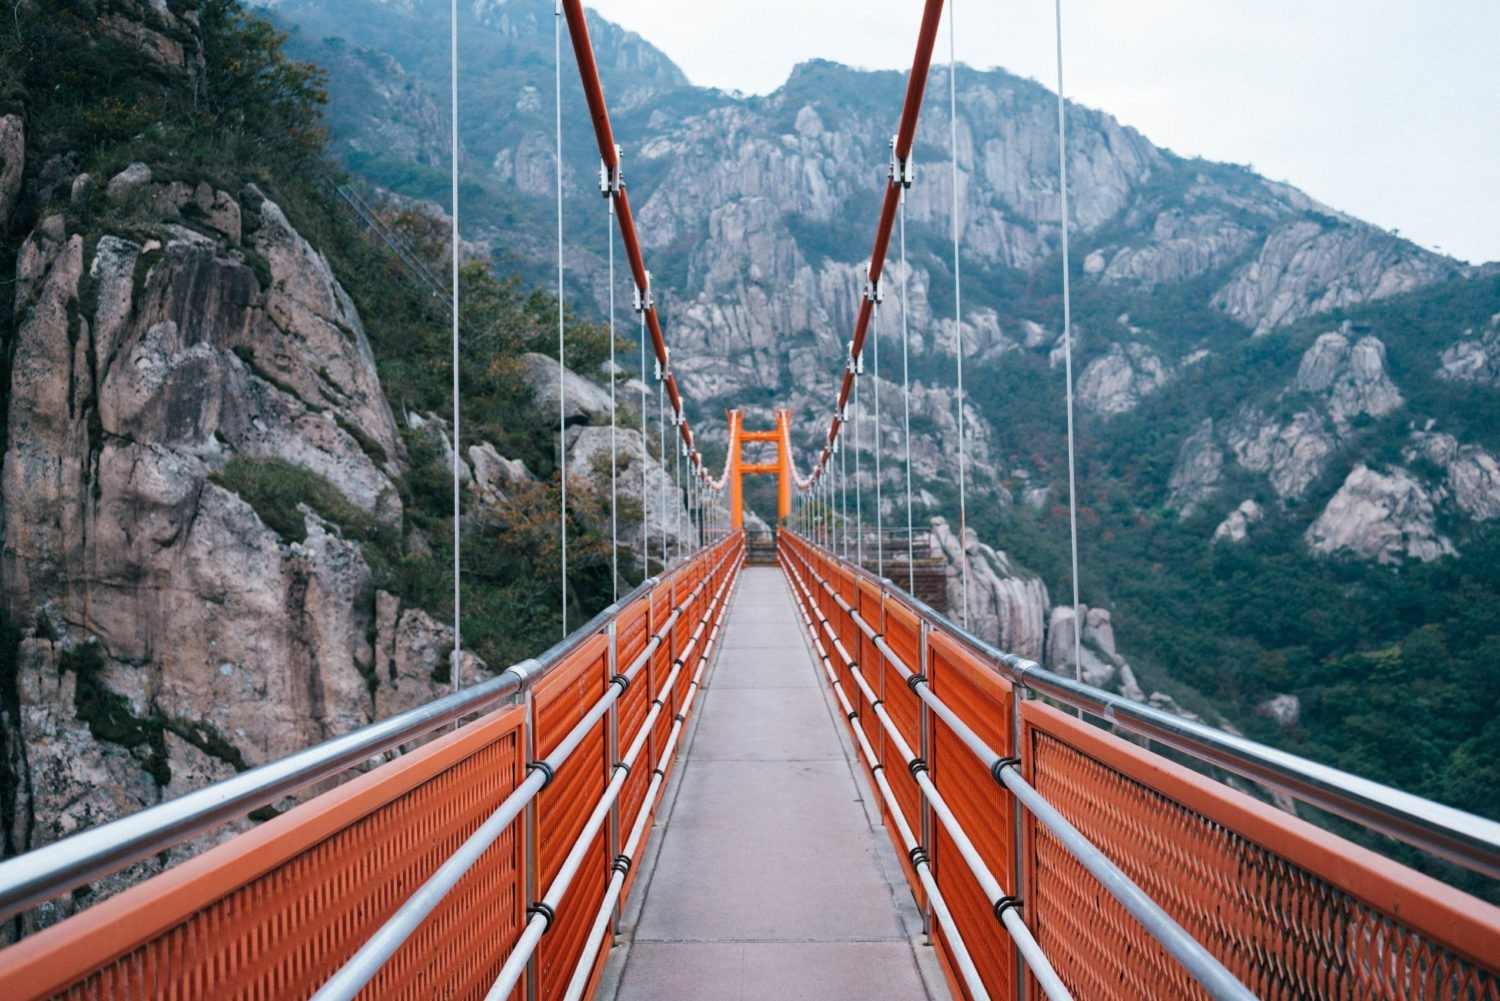 bf1eb9bfb14 Hiking Wolchulsan to Cross One of Korea s Must See Bridges